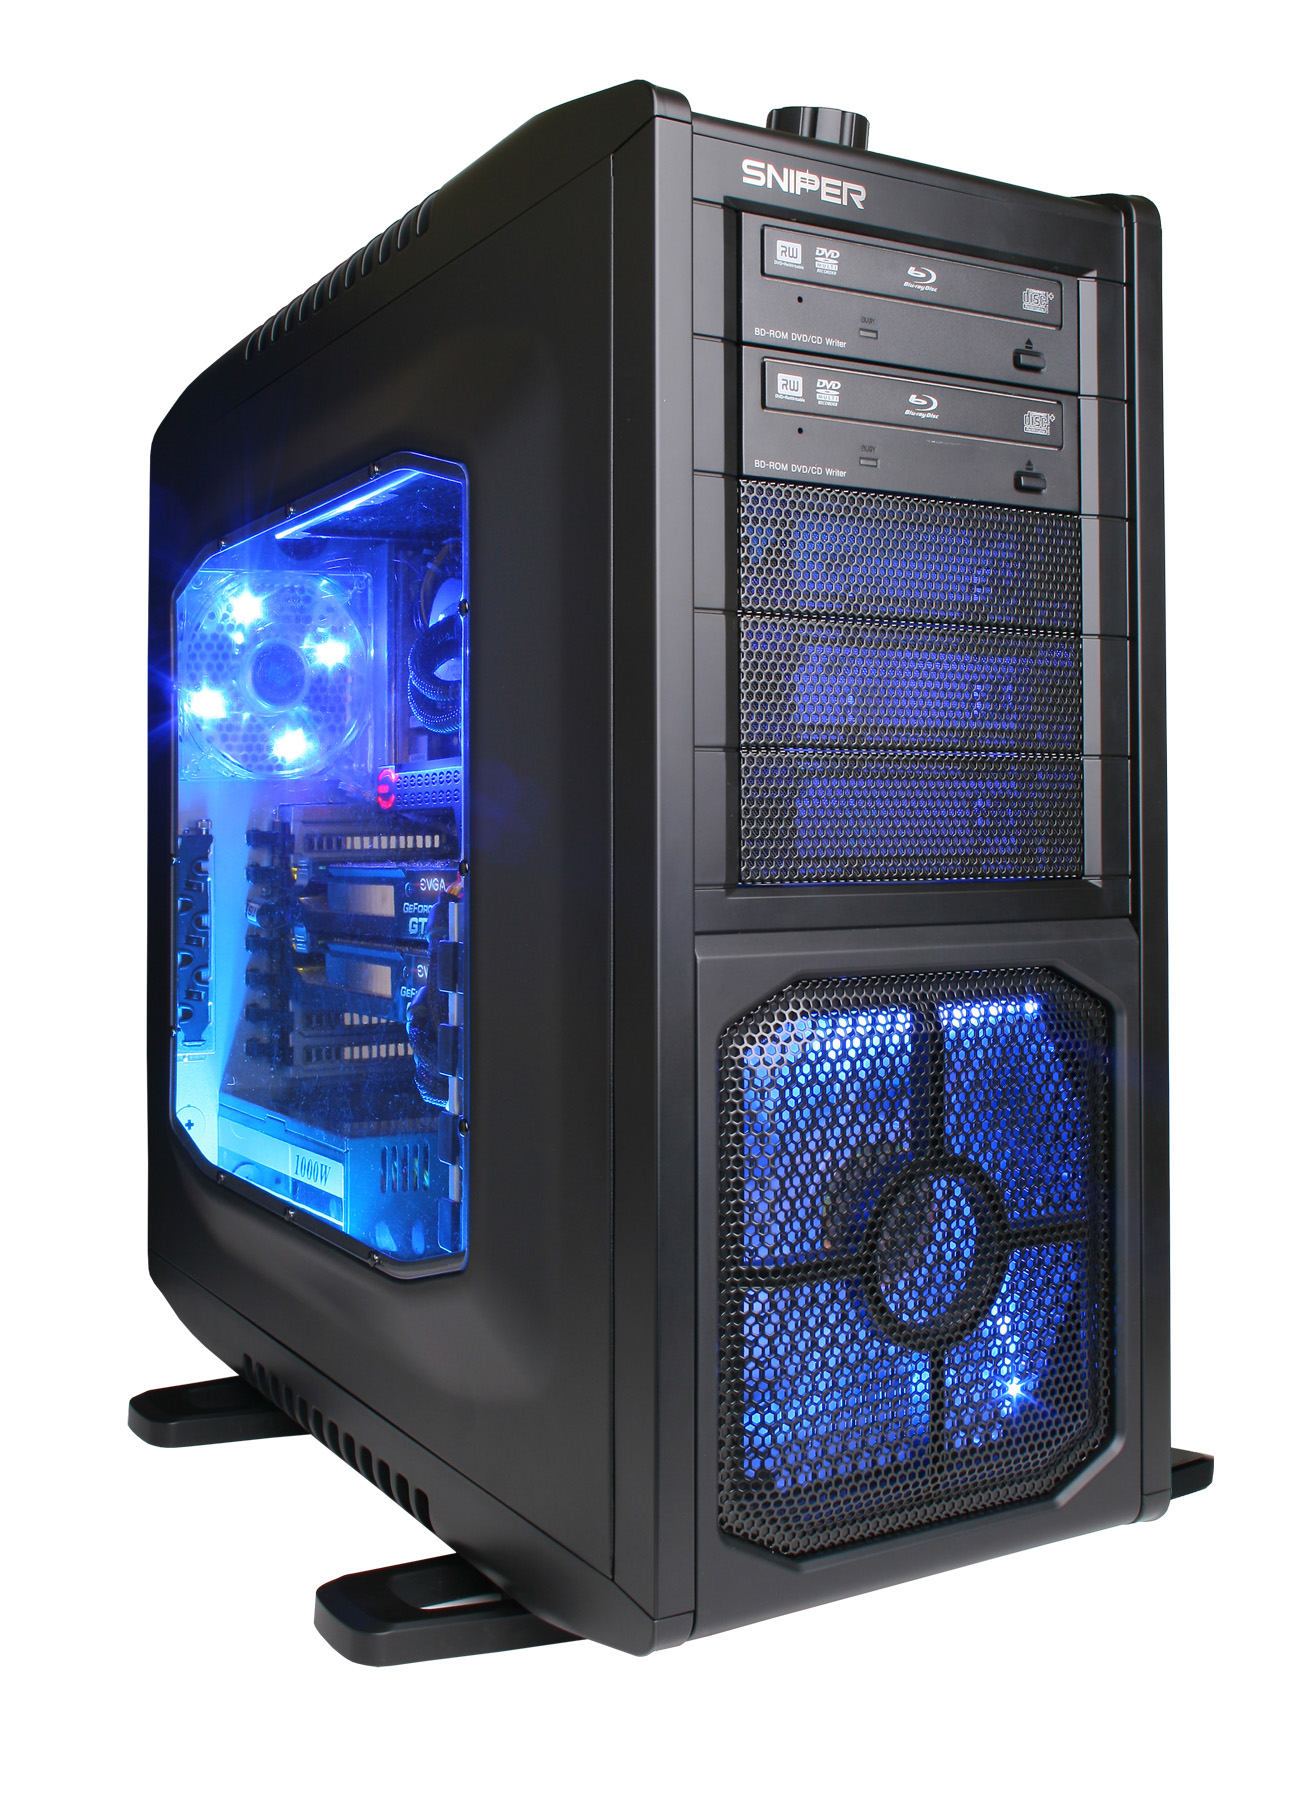 Forums; Expired Offers; Expired Deals [Comp] Intel Core i7 920 OEM $200 *NCIX DOD* Coolit CPU Water Cooler $35 Corsair 12gb $130